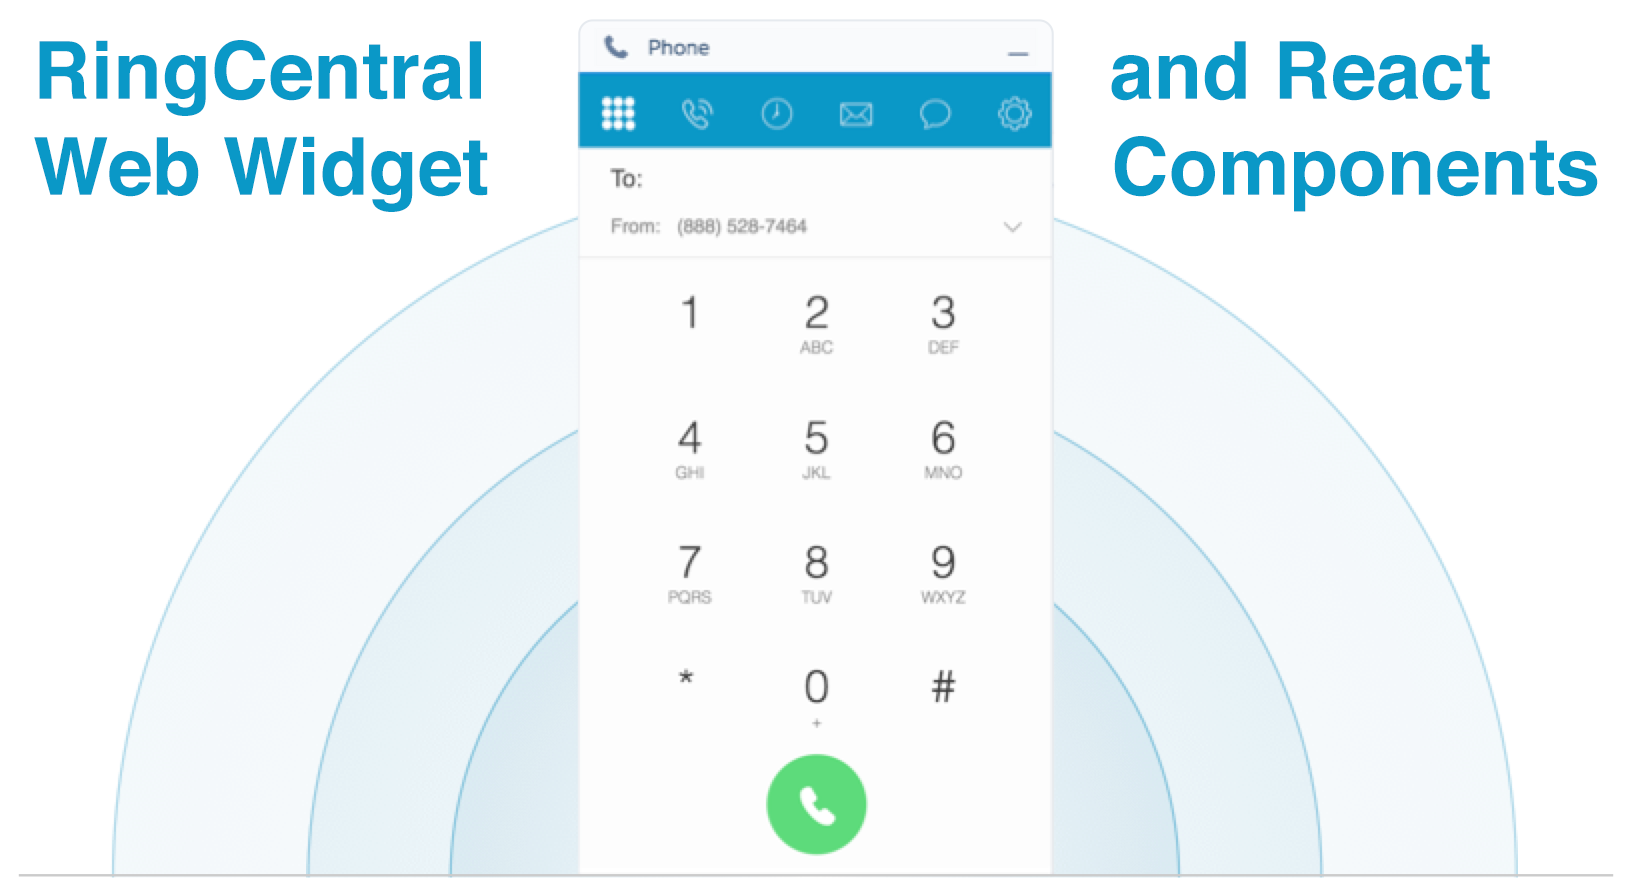 Build Voice and Messaging Apps Quickly with the RingCentral Web Widget